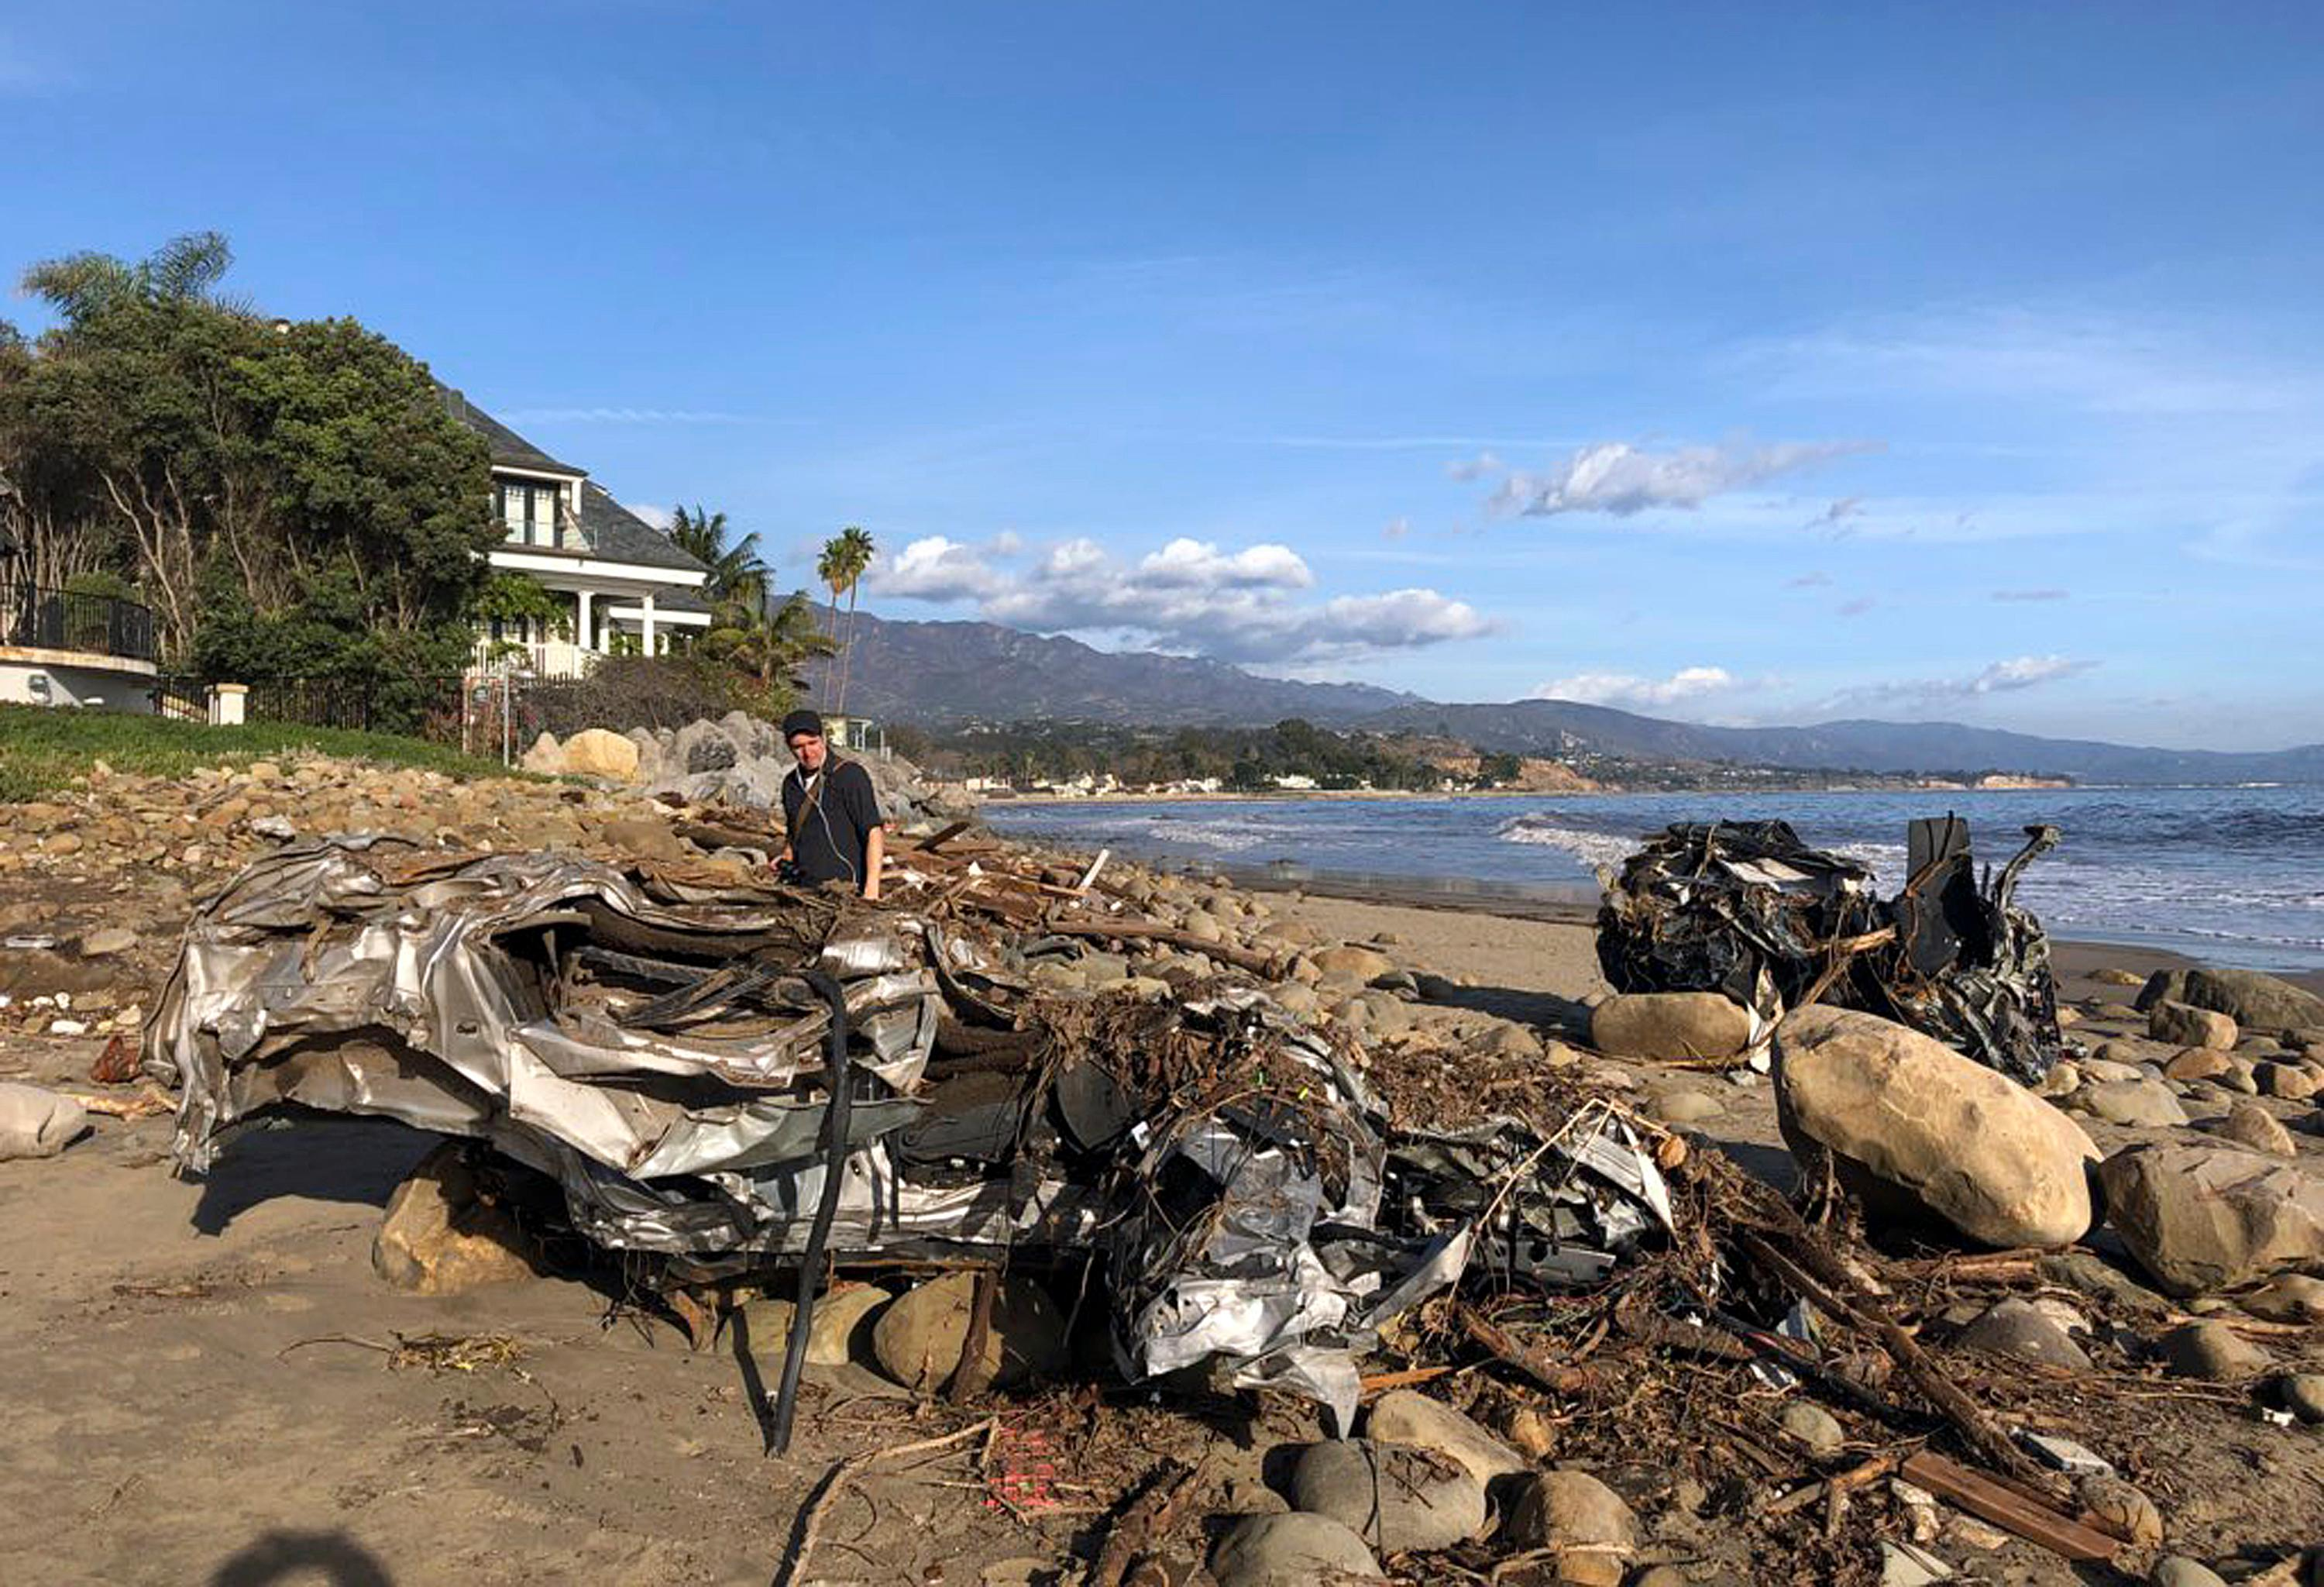 This photo provided by the Santa Barbara County Fire Department shows the wreckage of two autos on the beach that were carried by floodwaters down Montecito Creek Tuesday all the way to the Pacific Ocean in Montecito, Calif., Wednesday, Jan. 10, 2018. Anxious family members awaited word on loved ones Wednesday as rescue crews searched grimy debris and ruins for more than a dozen people missing after mudslides in Southern California destroyed houses, swept cars to the beach and left more than a dozen victims dead. (Mike Eliason/Santa Barbara County Fire Department via AP)